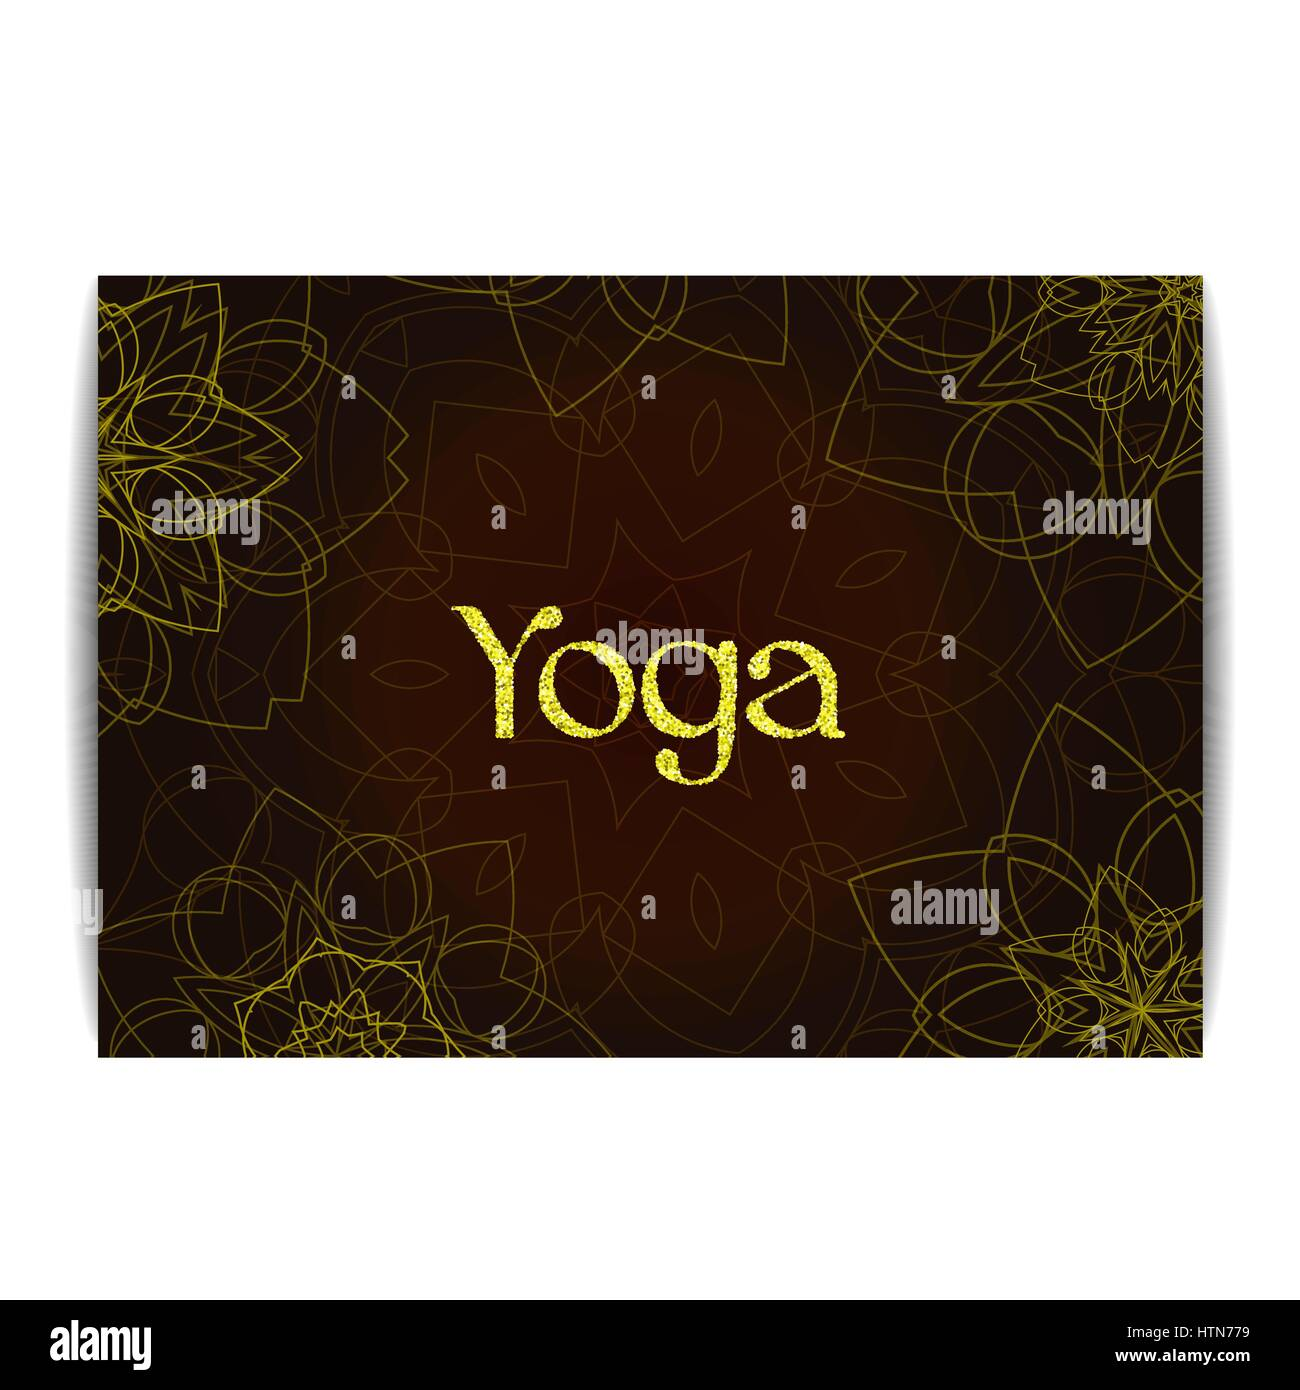 Yoga Banner With Floral Mandalas Indian Traditional Ornament Golden Text Design For Or Meditation Studio Flyer Card Invitation Realistic G